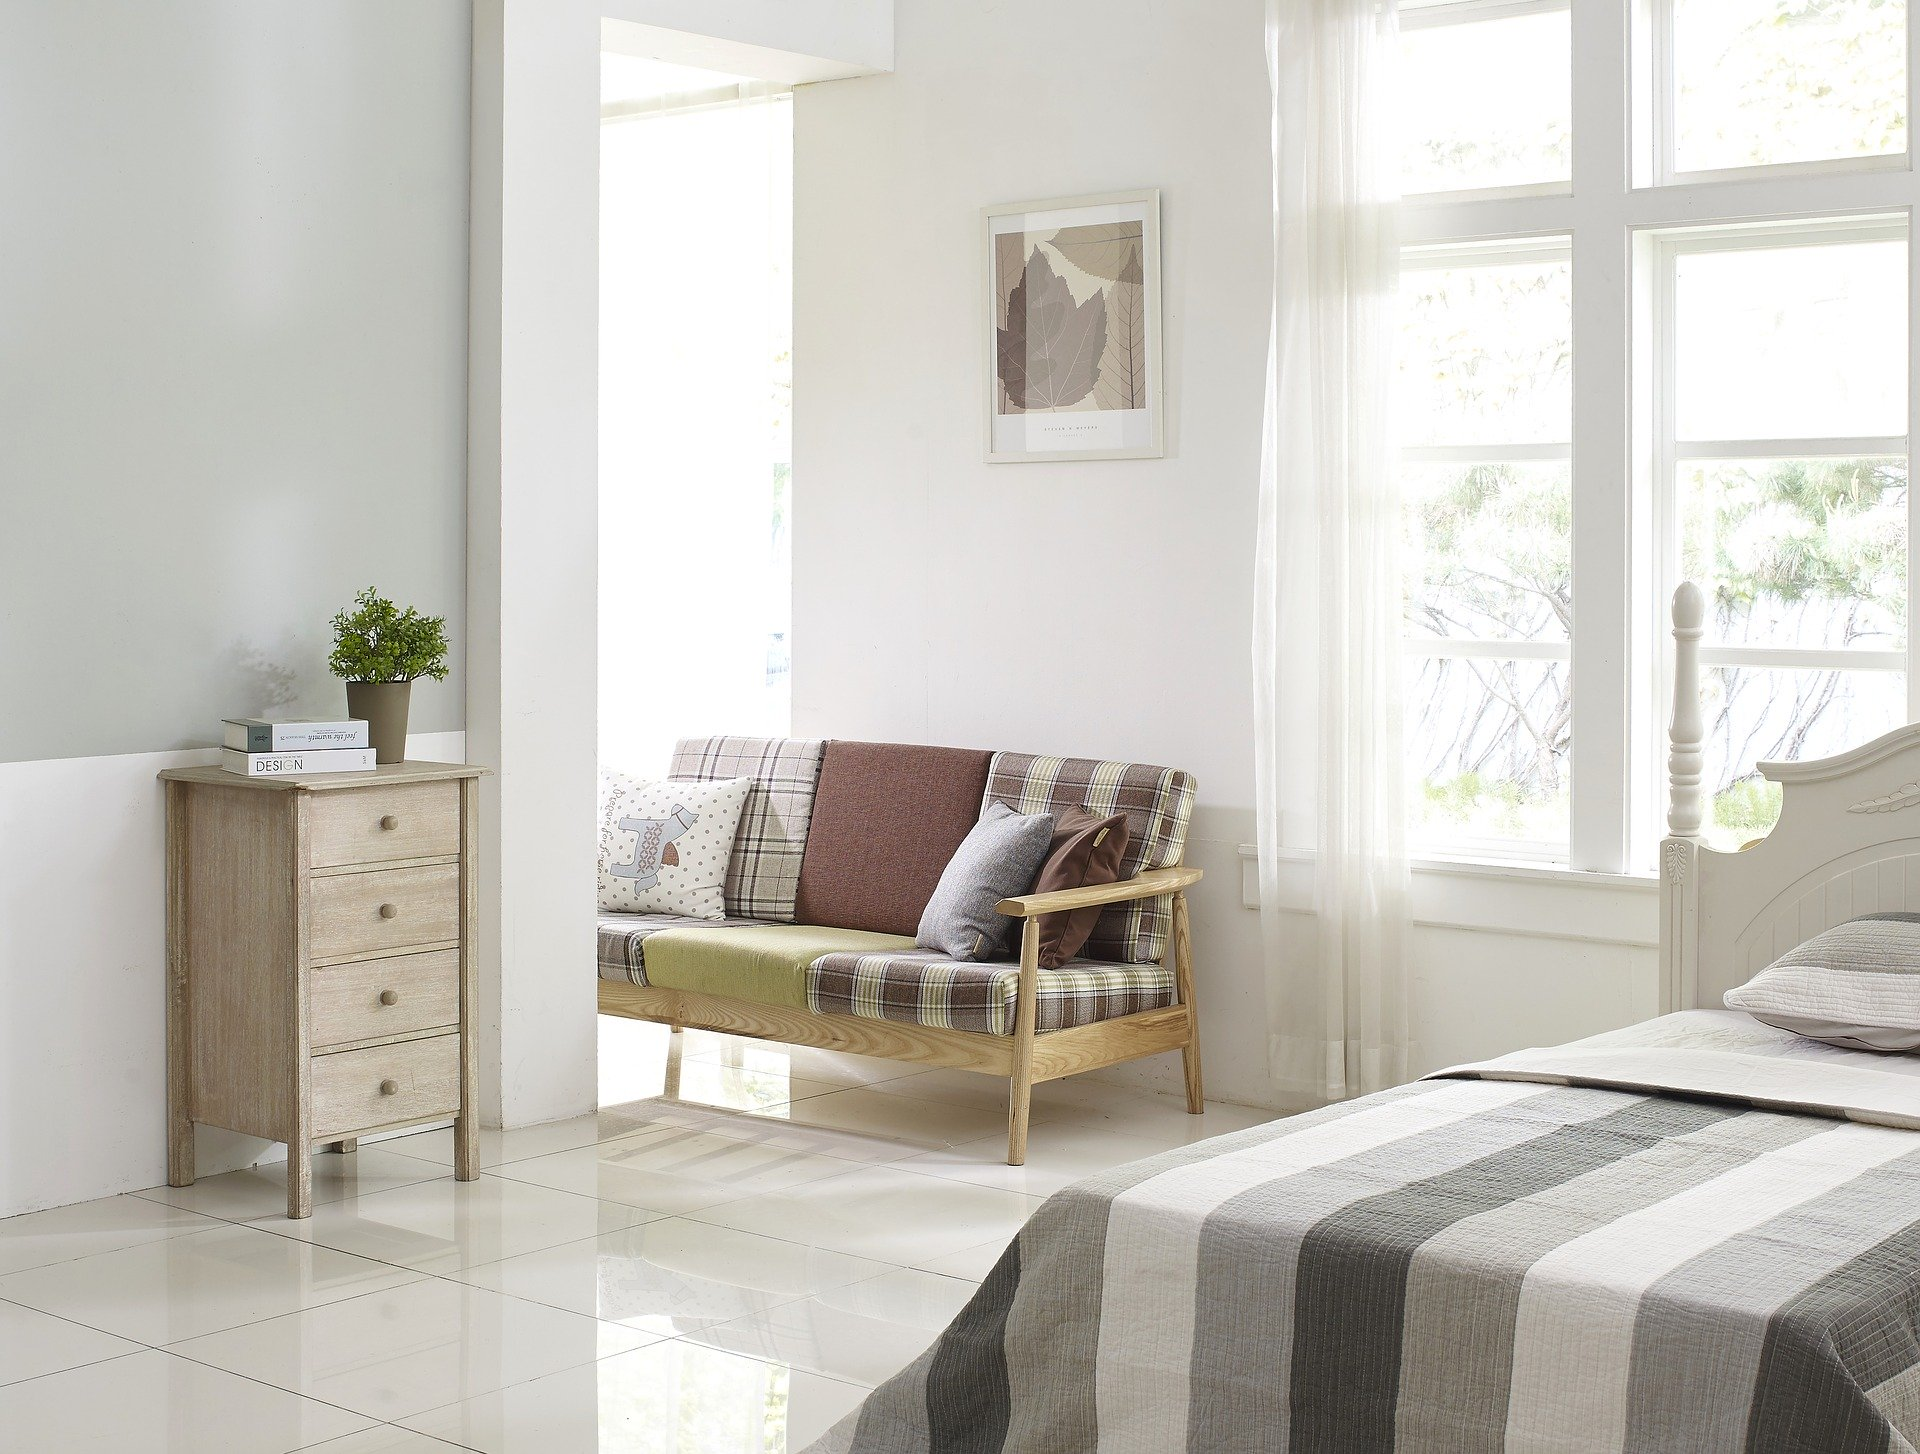 bedroom with a neutral colour scheme, Turning Your Spare Room Into An Inviting Guest Room